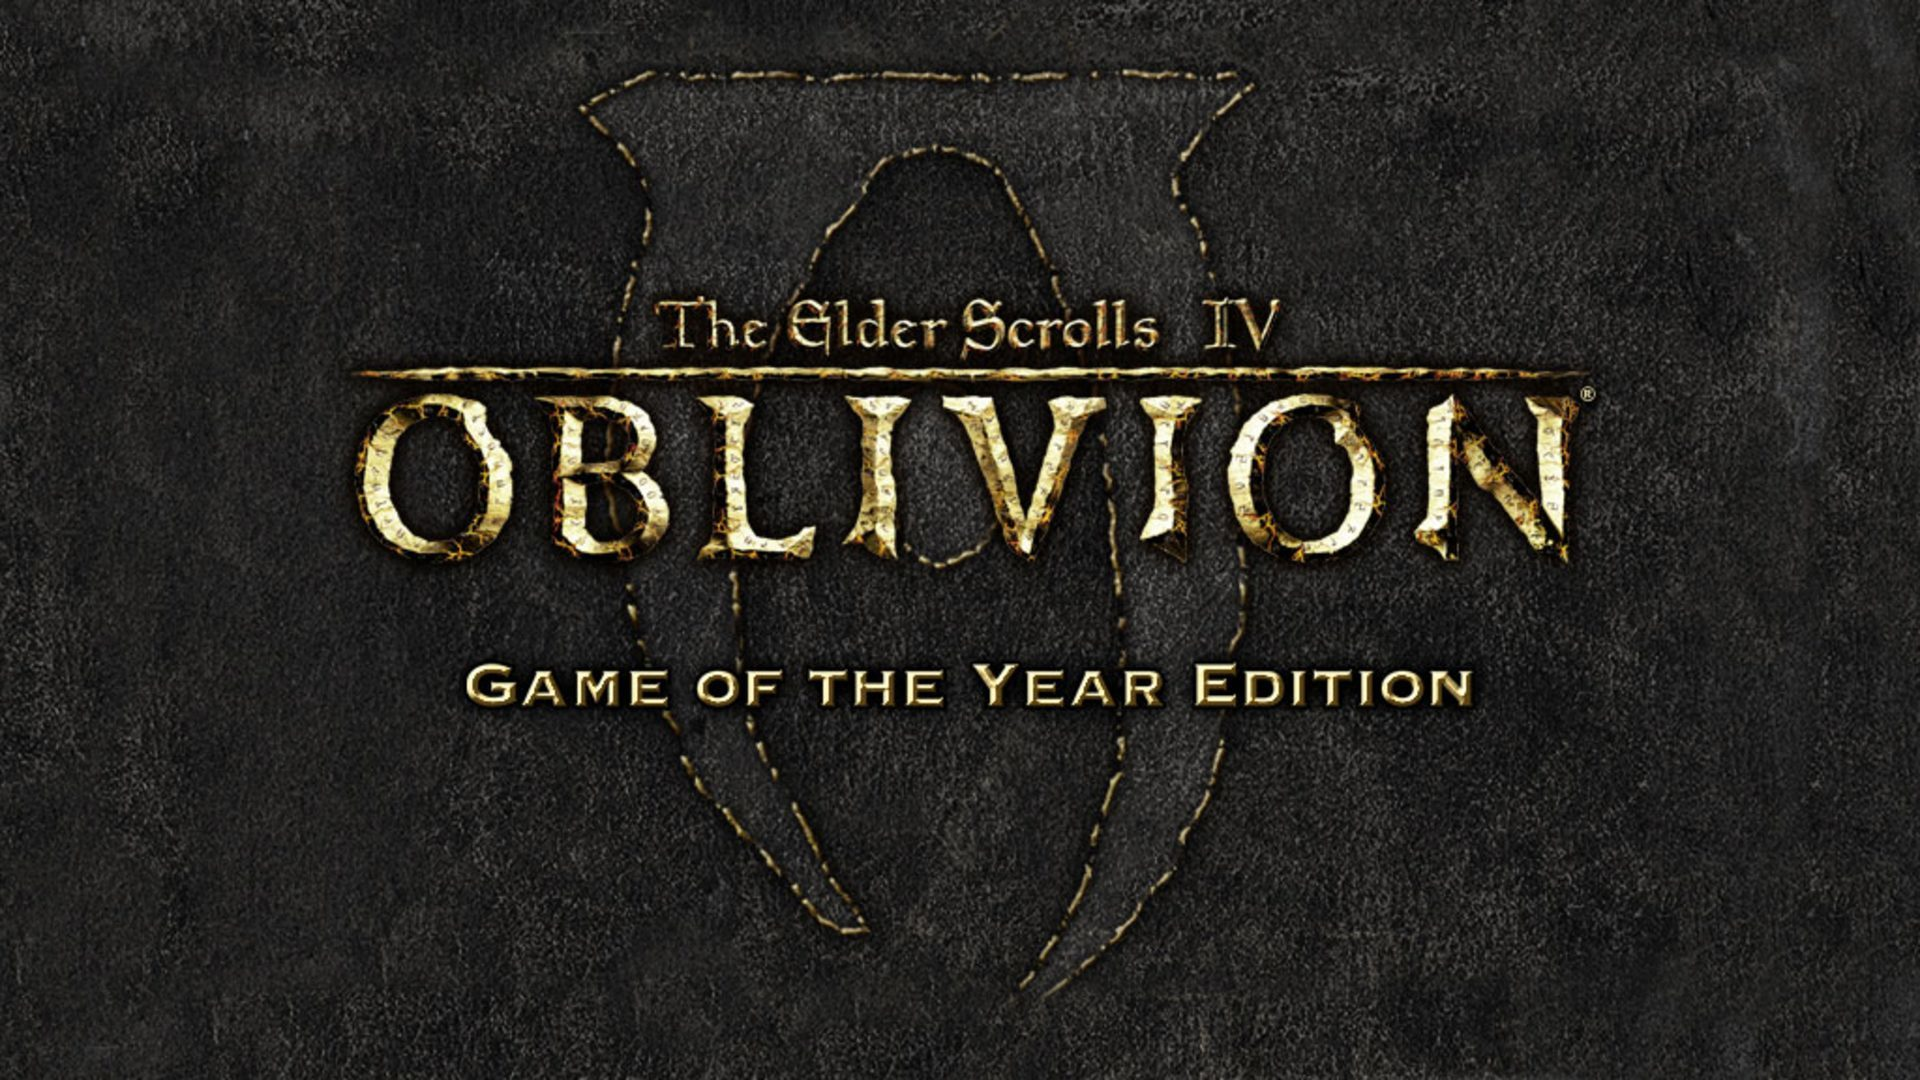 The Elder Scrolls Iv Oblivion Game Of The Year Edition Pc